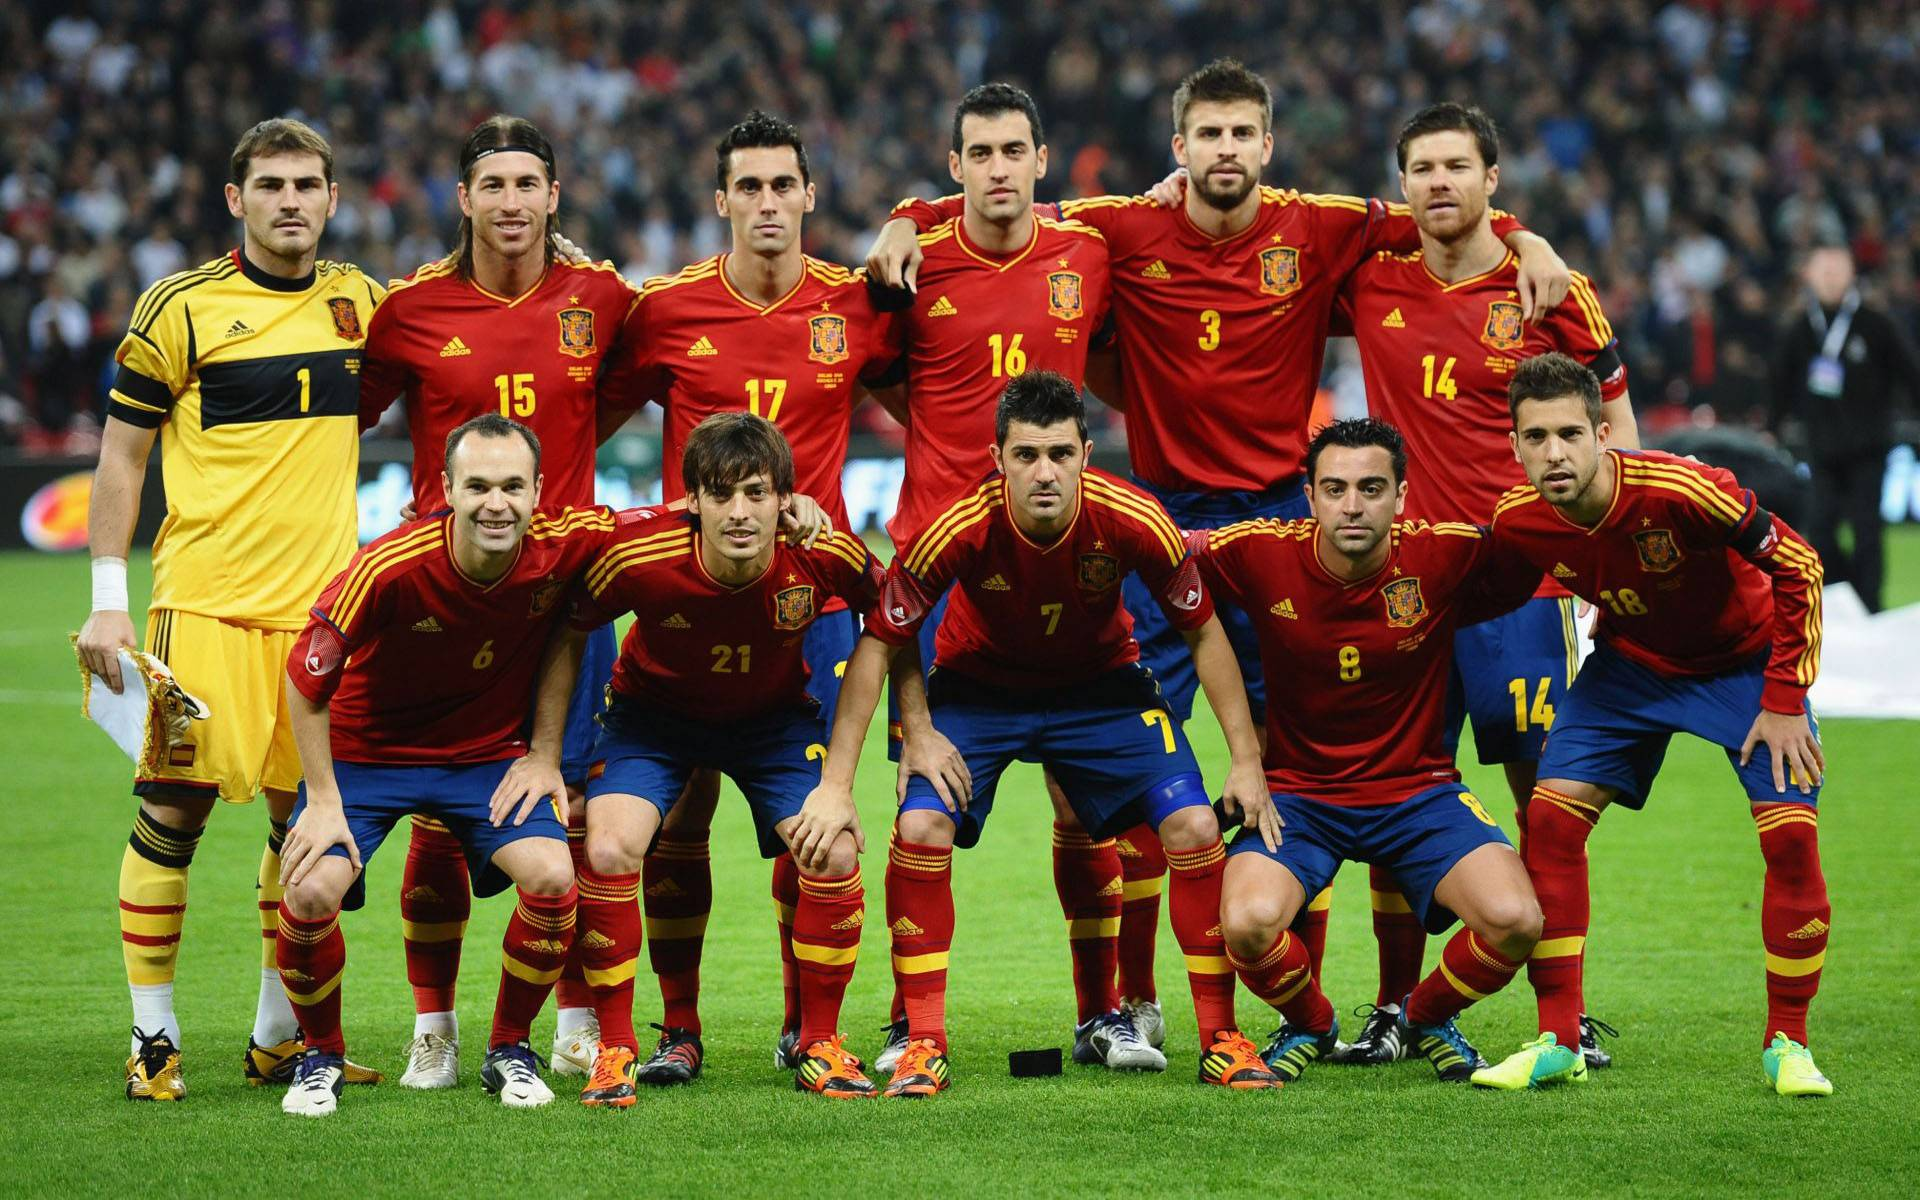 Spain National Team Live Wallpaper - Free Android Application .